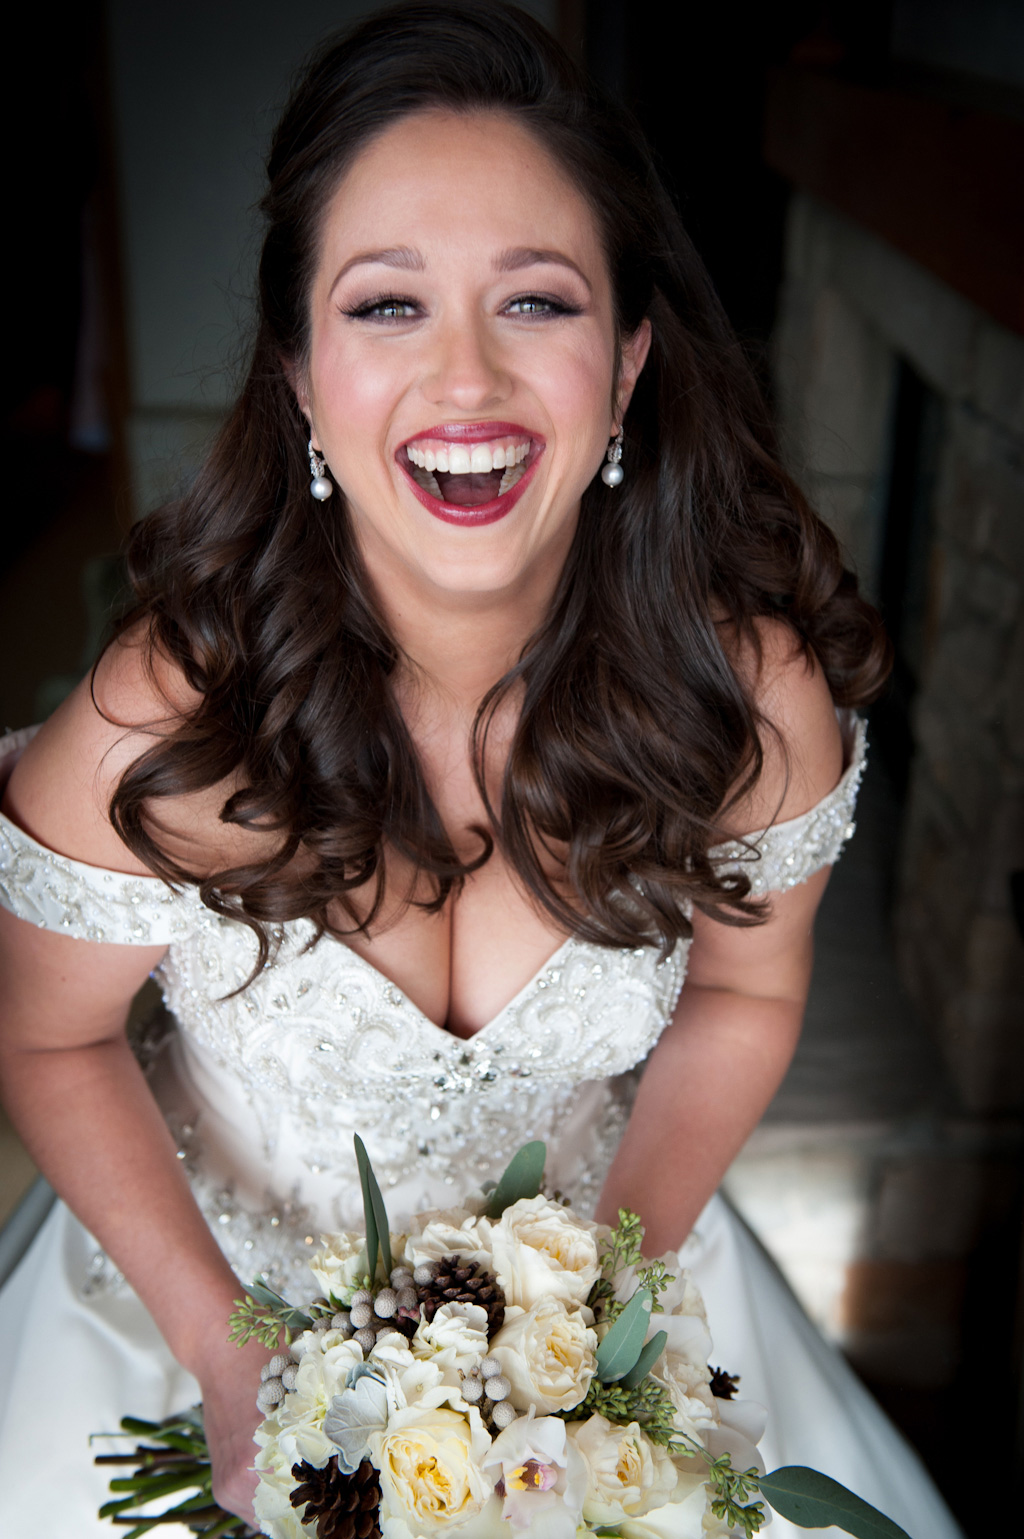 Winter bride smiling with red lipstick